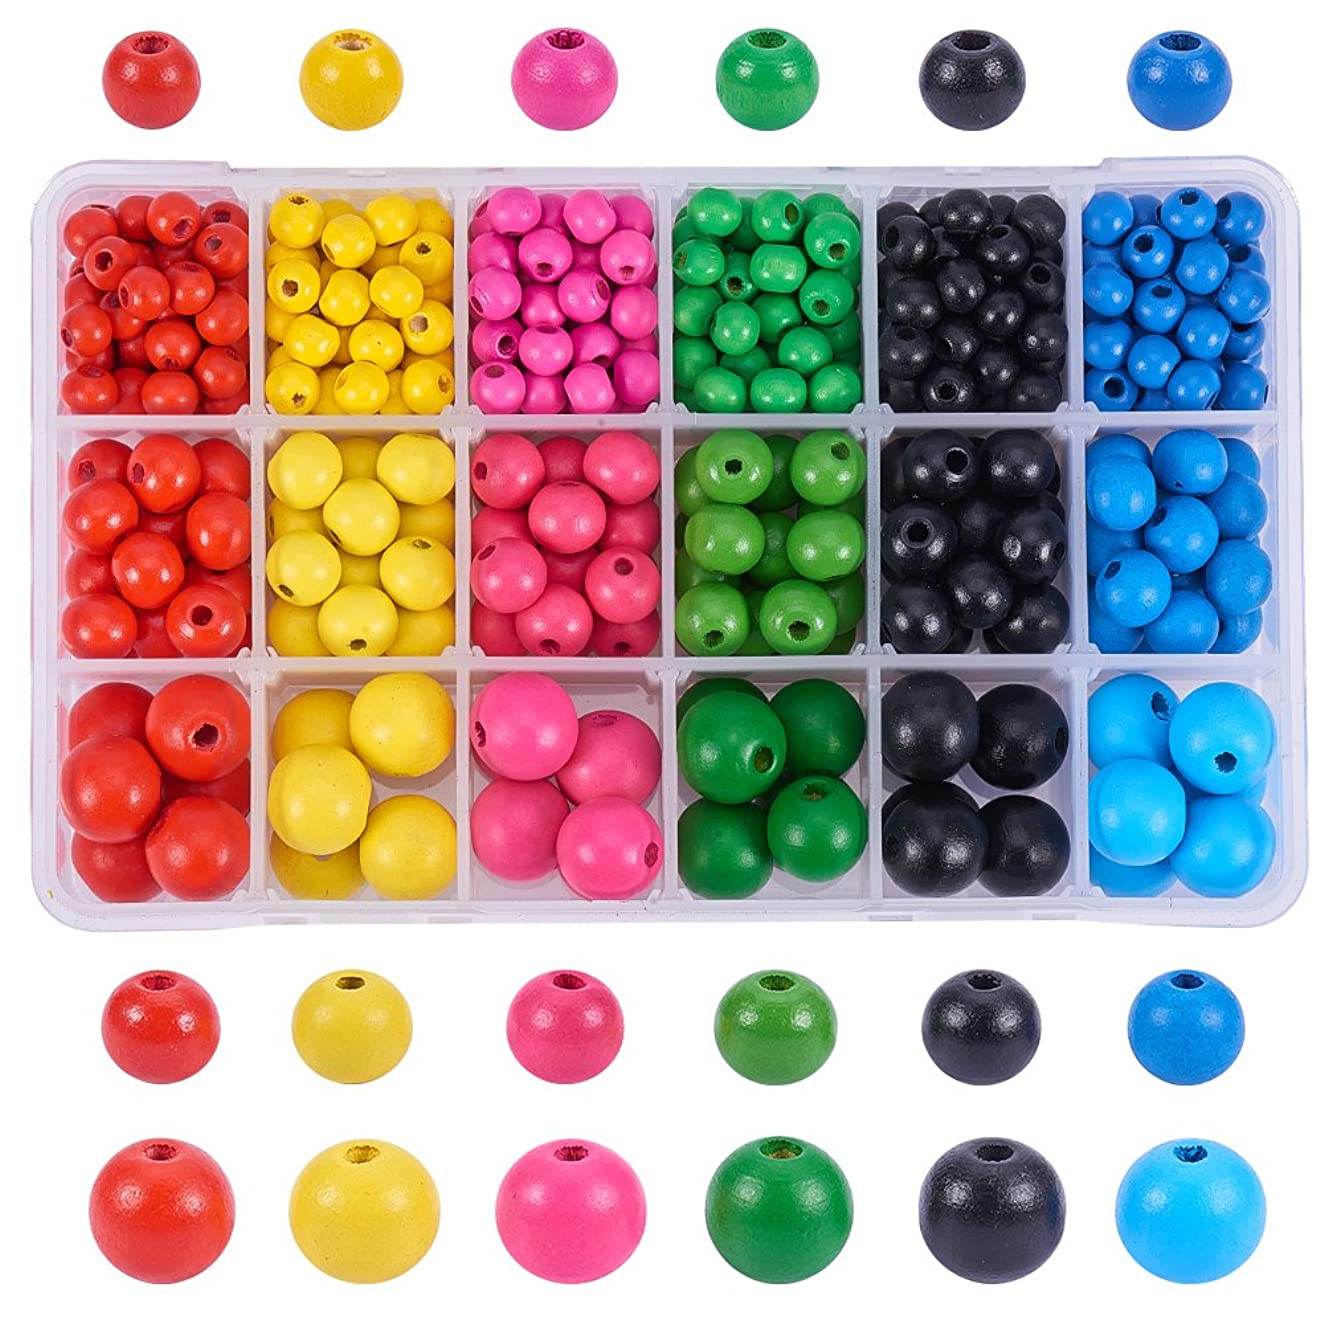 PH PandaHall About 450pcs 6 Color 3 Size Dyed Environmental Round Wood Beads Assorted in Box for DIY Crafting Jewelry Making